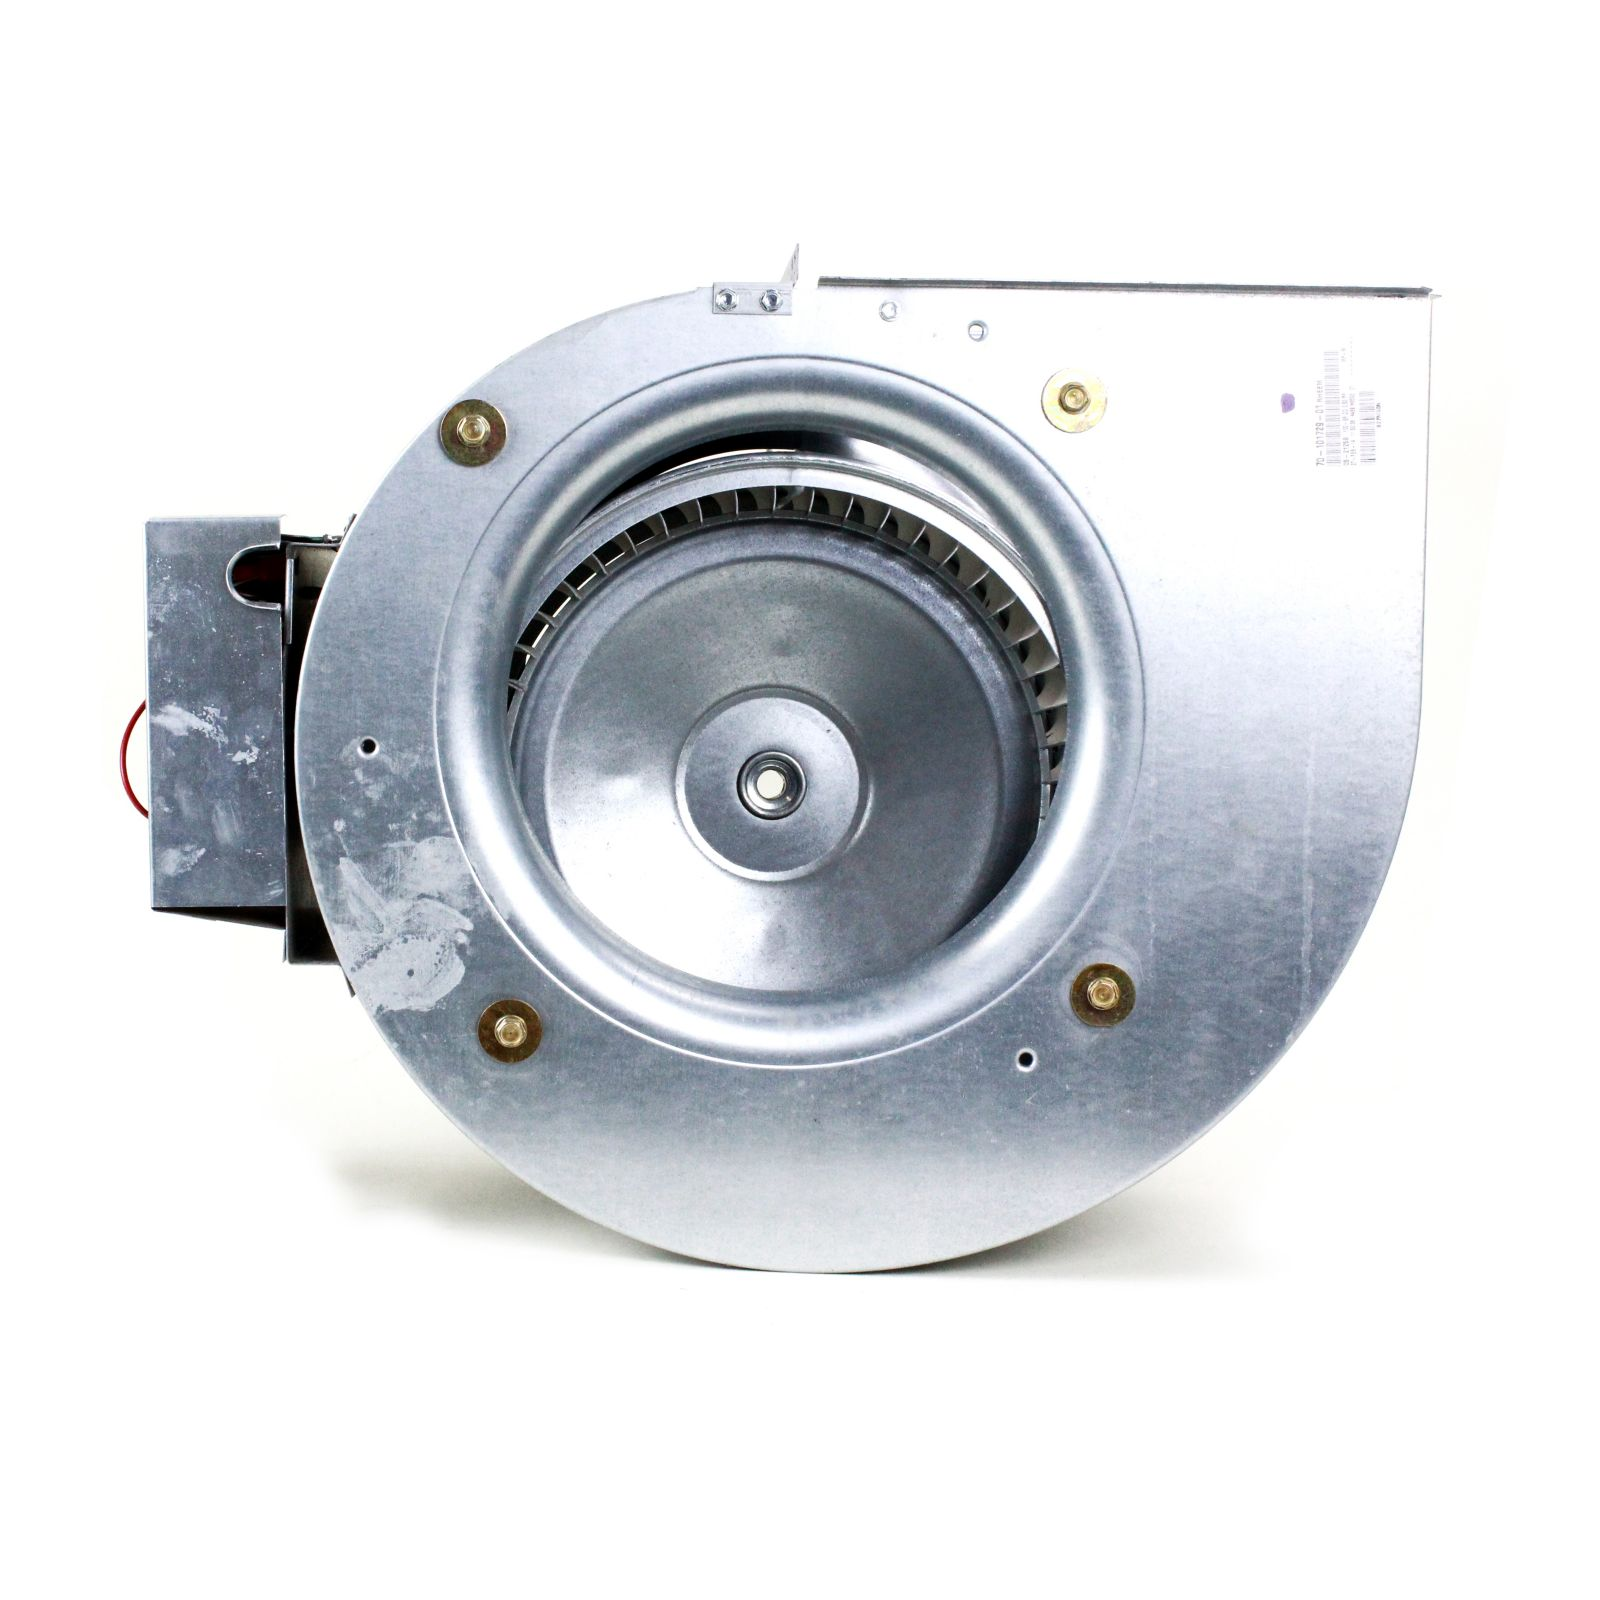 PROTECH 70-101729-01 - Blower Housing With Wheel